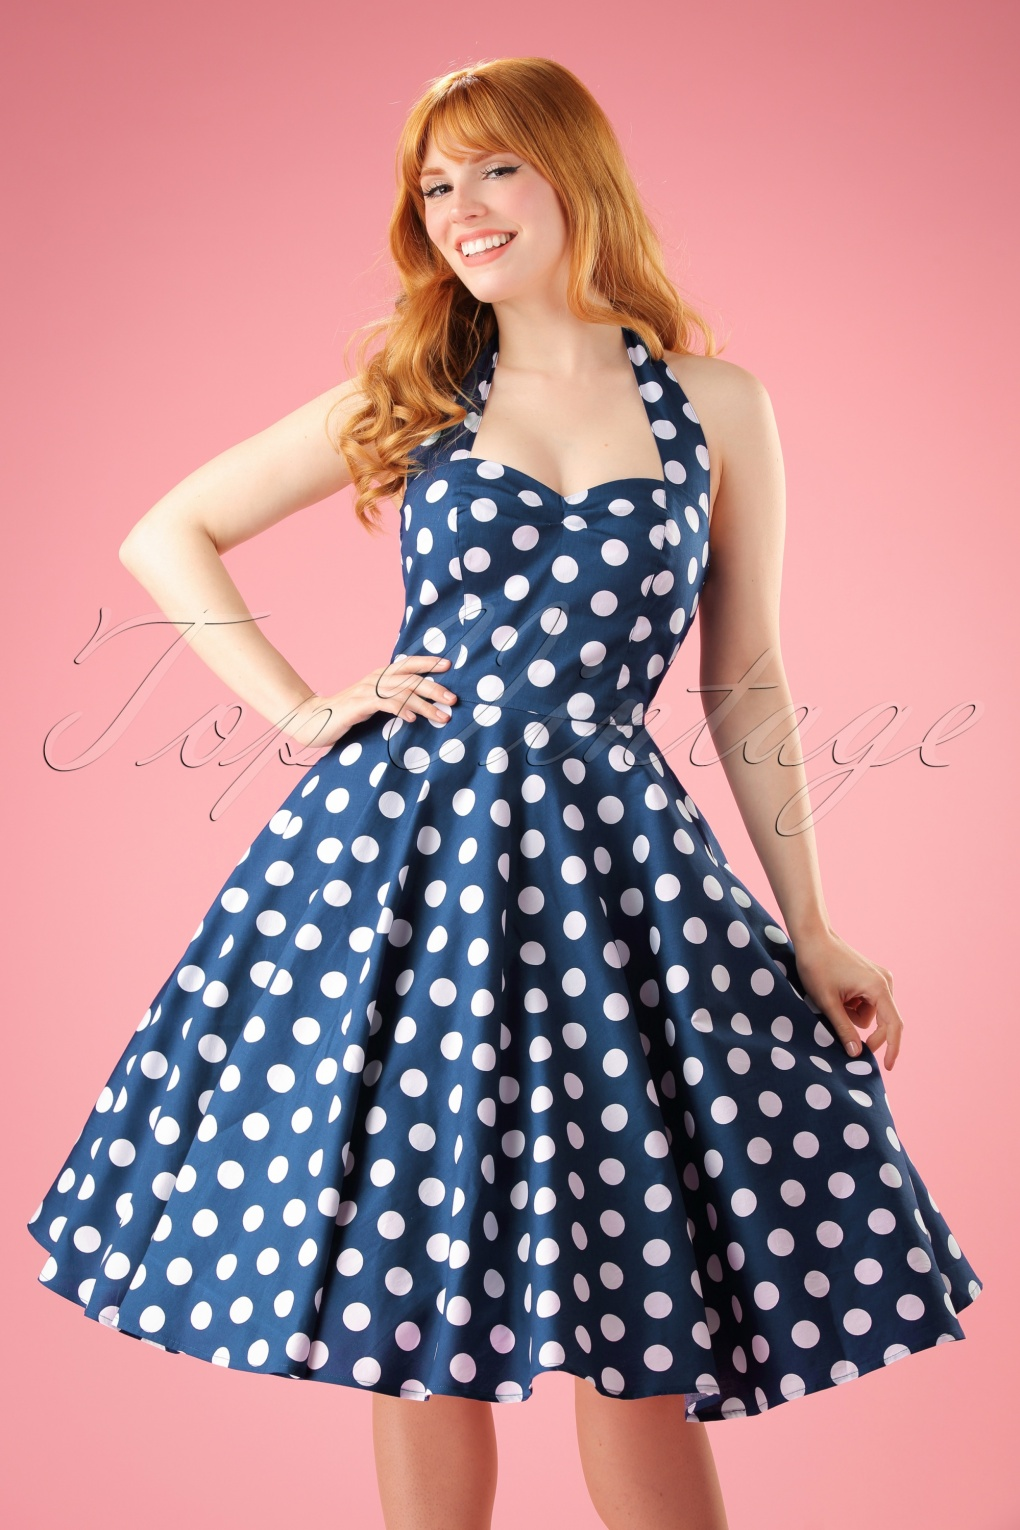 Vintage Inspired Clothing Stores 50s Meriam Polkadot Swing Dress in Navy and White £52.43 AT vintagedancer.com